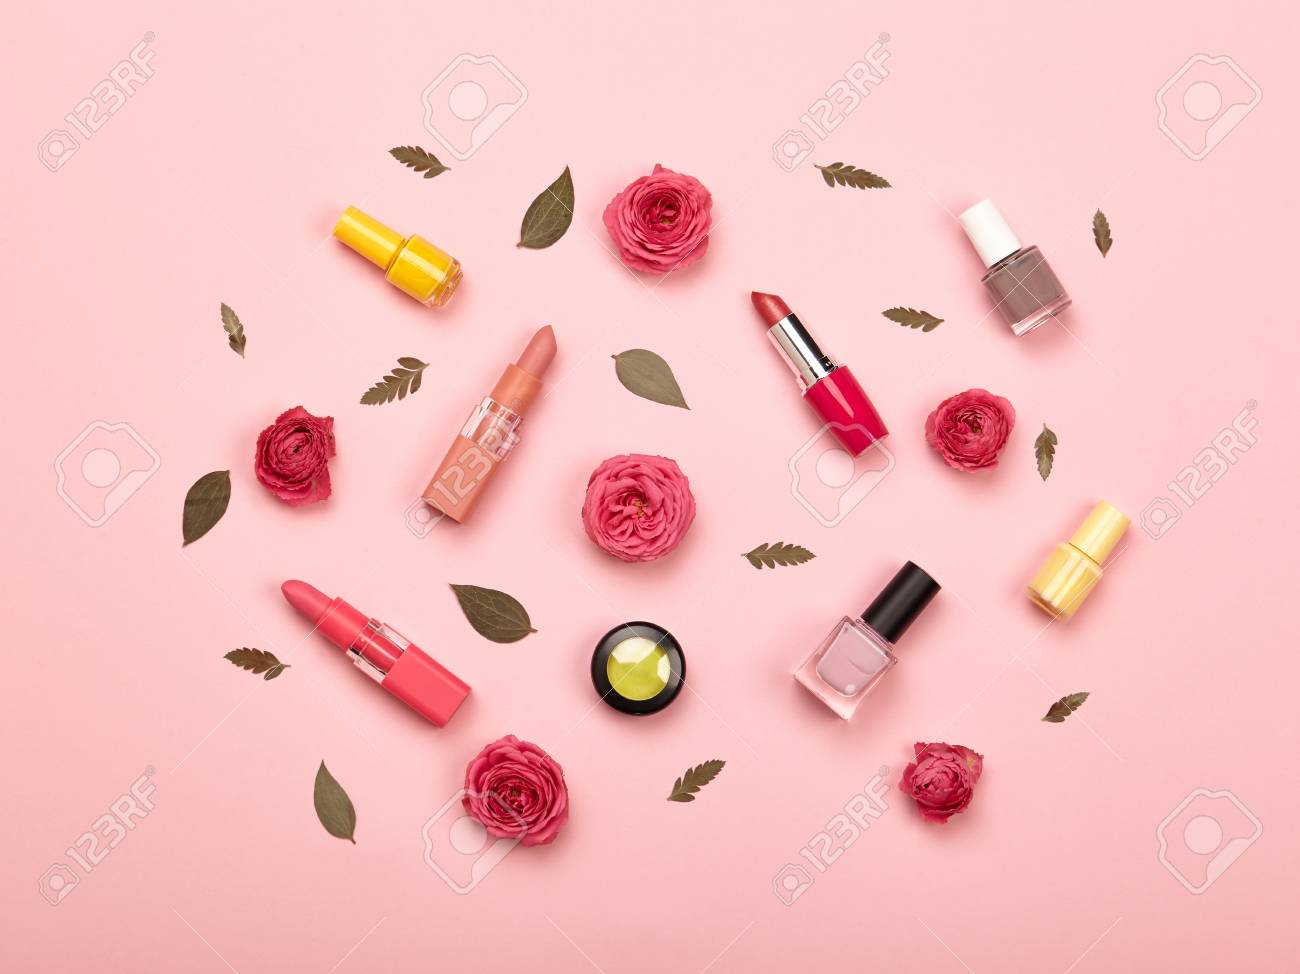 Fashionable Women's Cosmetics and Accessories. Falt Lay. Nail Polish and Lipstick. Beautiful Roses Flower. Make Up Cosmetic items Top View - 98433821